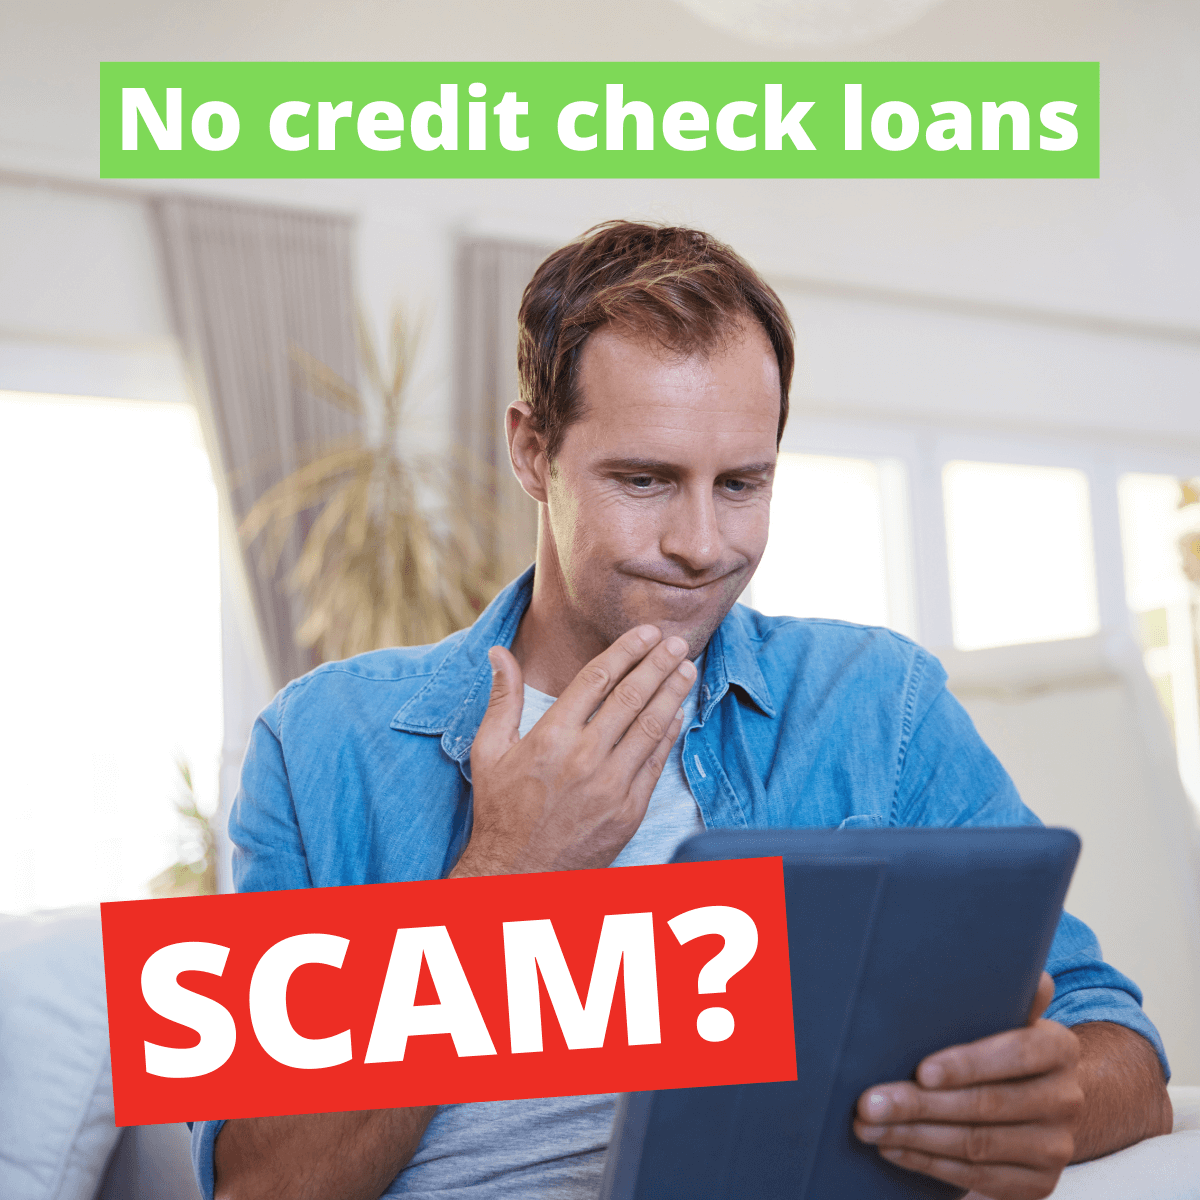 Are No Credit Check Loans a Scam?